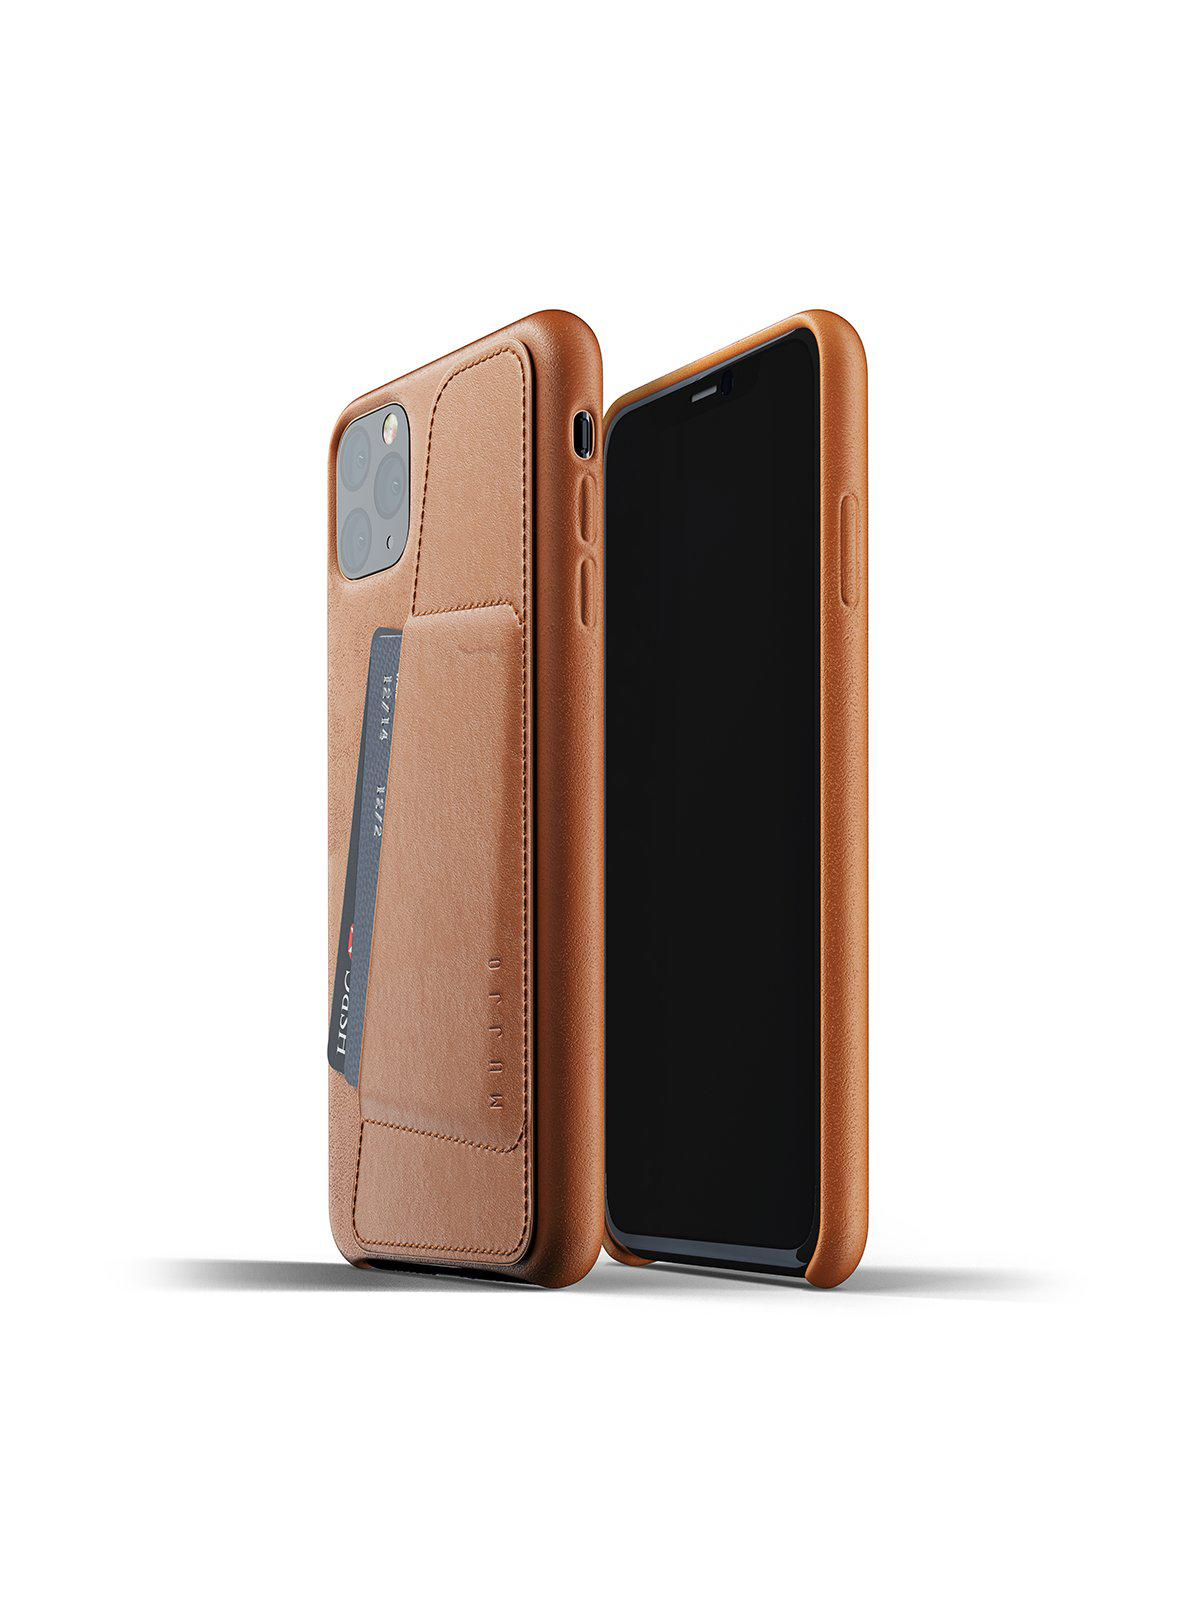 Mujjo Full Leather Wallet Case for iPhone 11 Pro Max Tan - MORE by Morello Indonesia